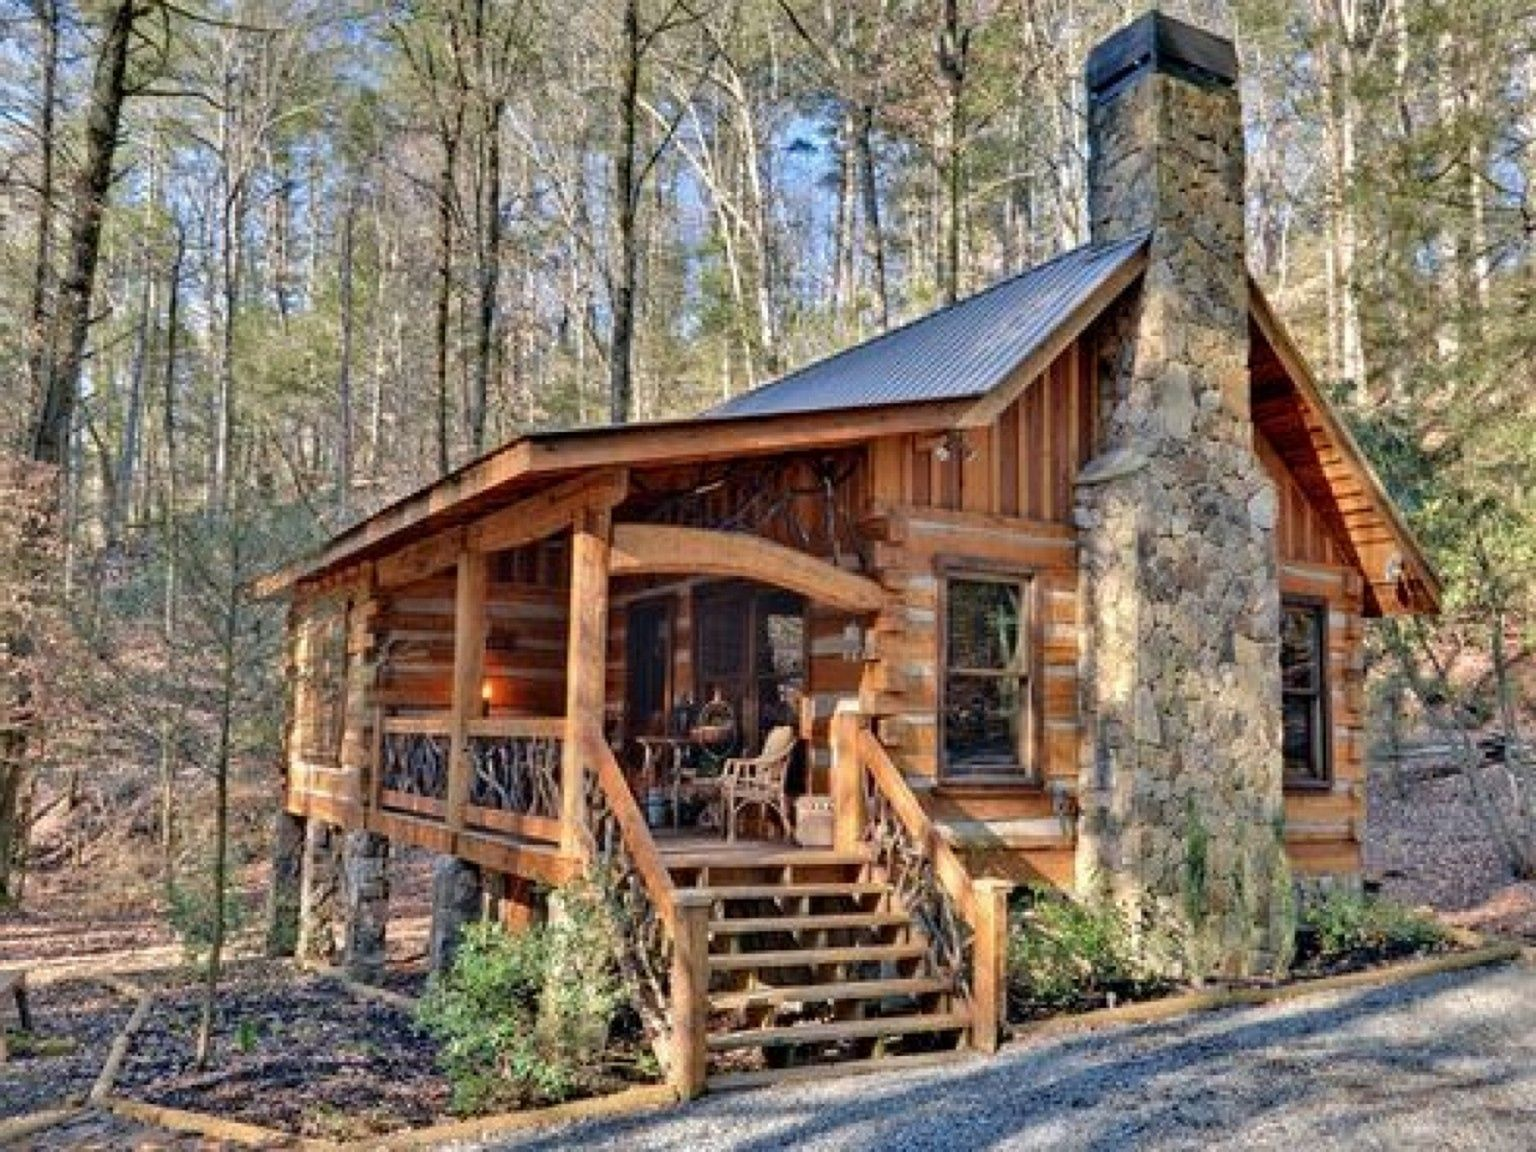 30 Comfortable Small Log Home Design Ideas For Best Inspirations Small Cabin Interiors Small Log Homes Small Log Cabin